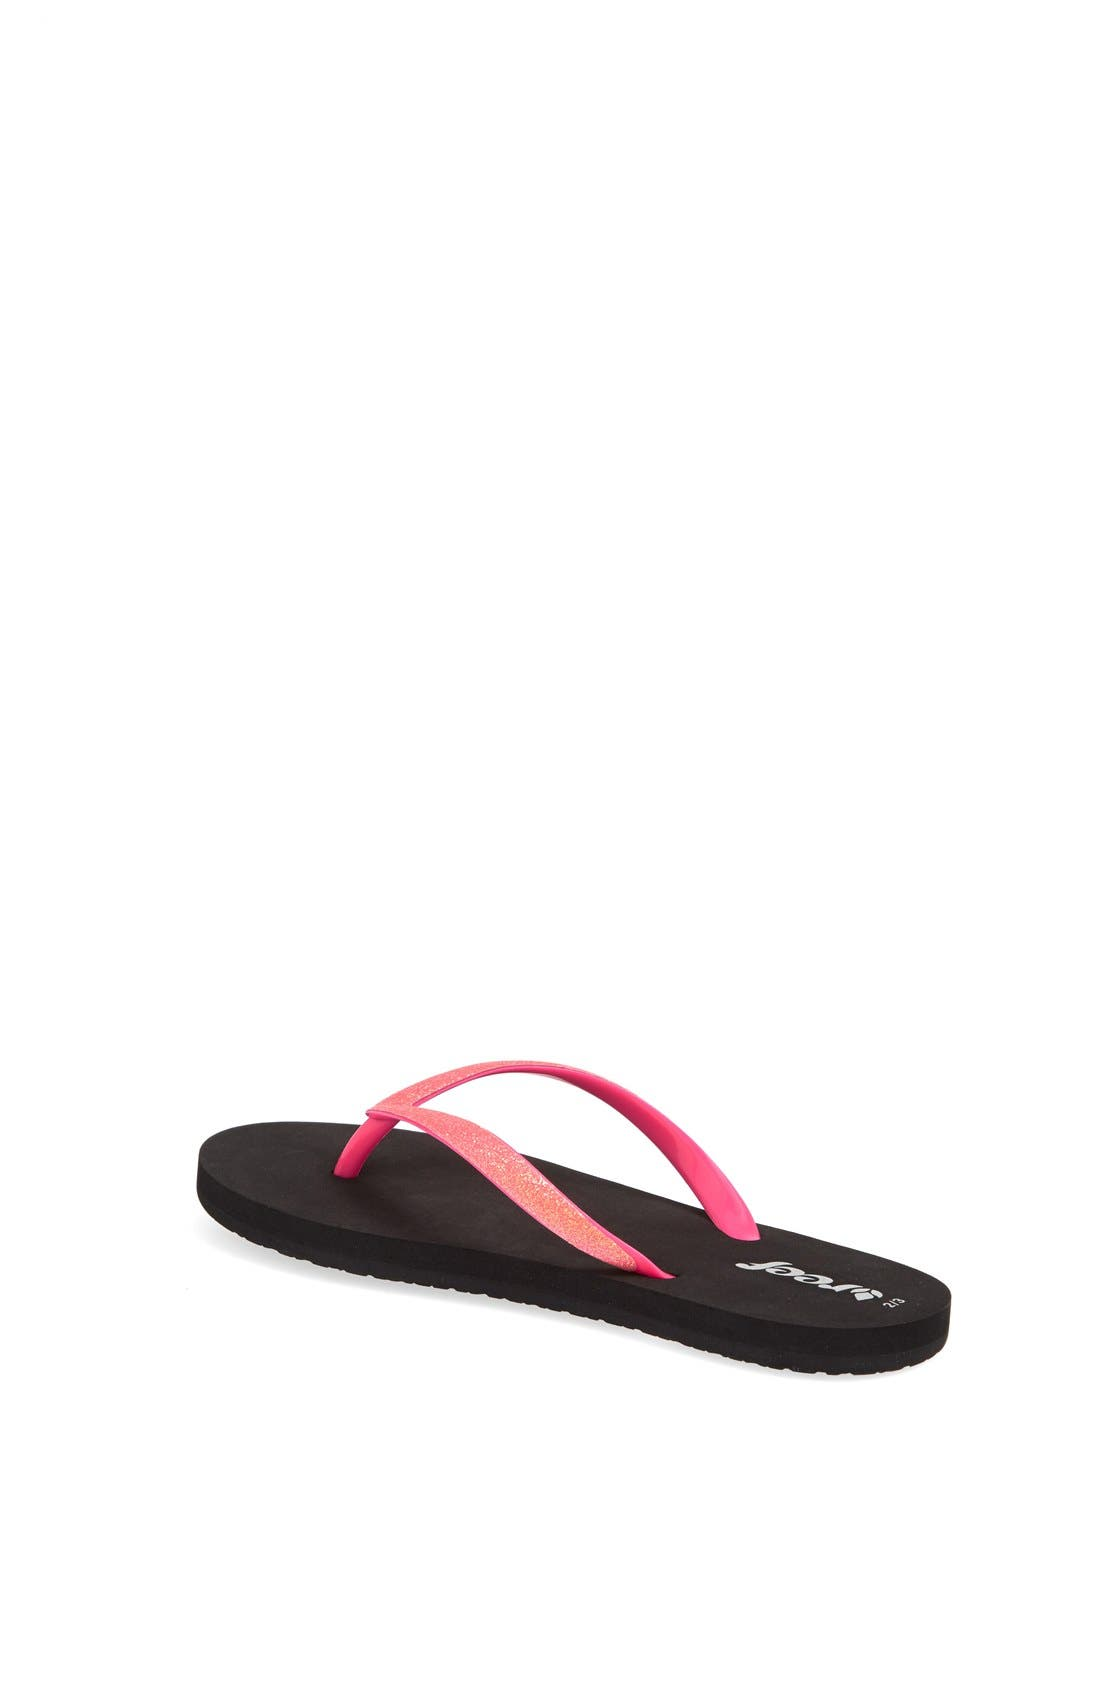 Alternate Image 2  - Reef 'Little Stargazer' Flip Flop (Toddler, Little Kid & Big Kid)